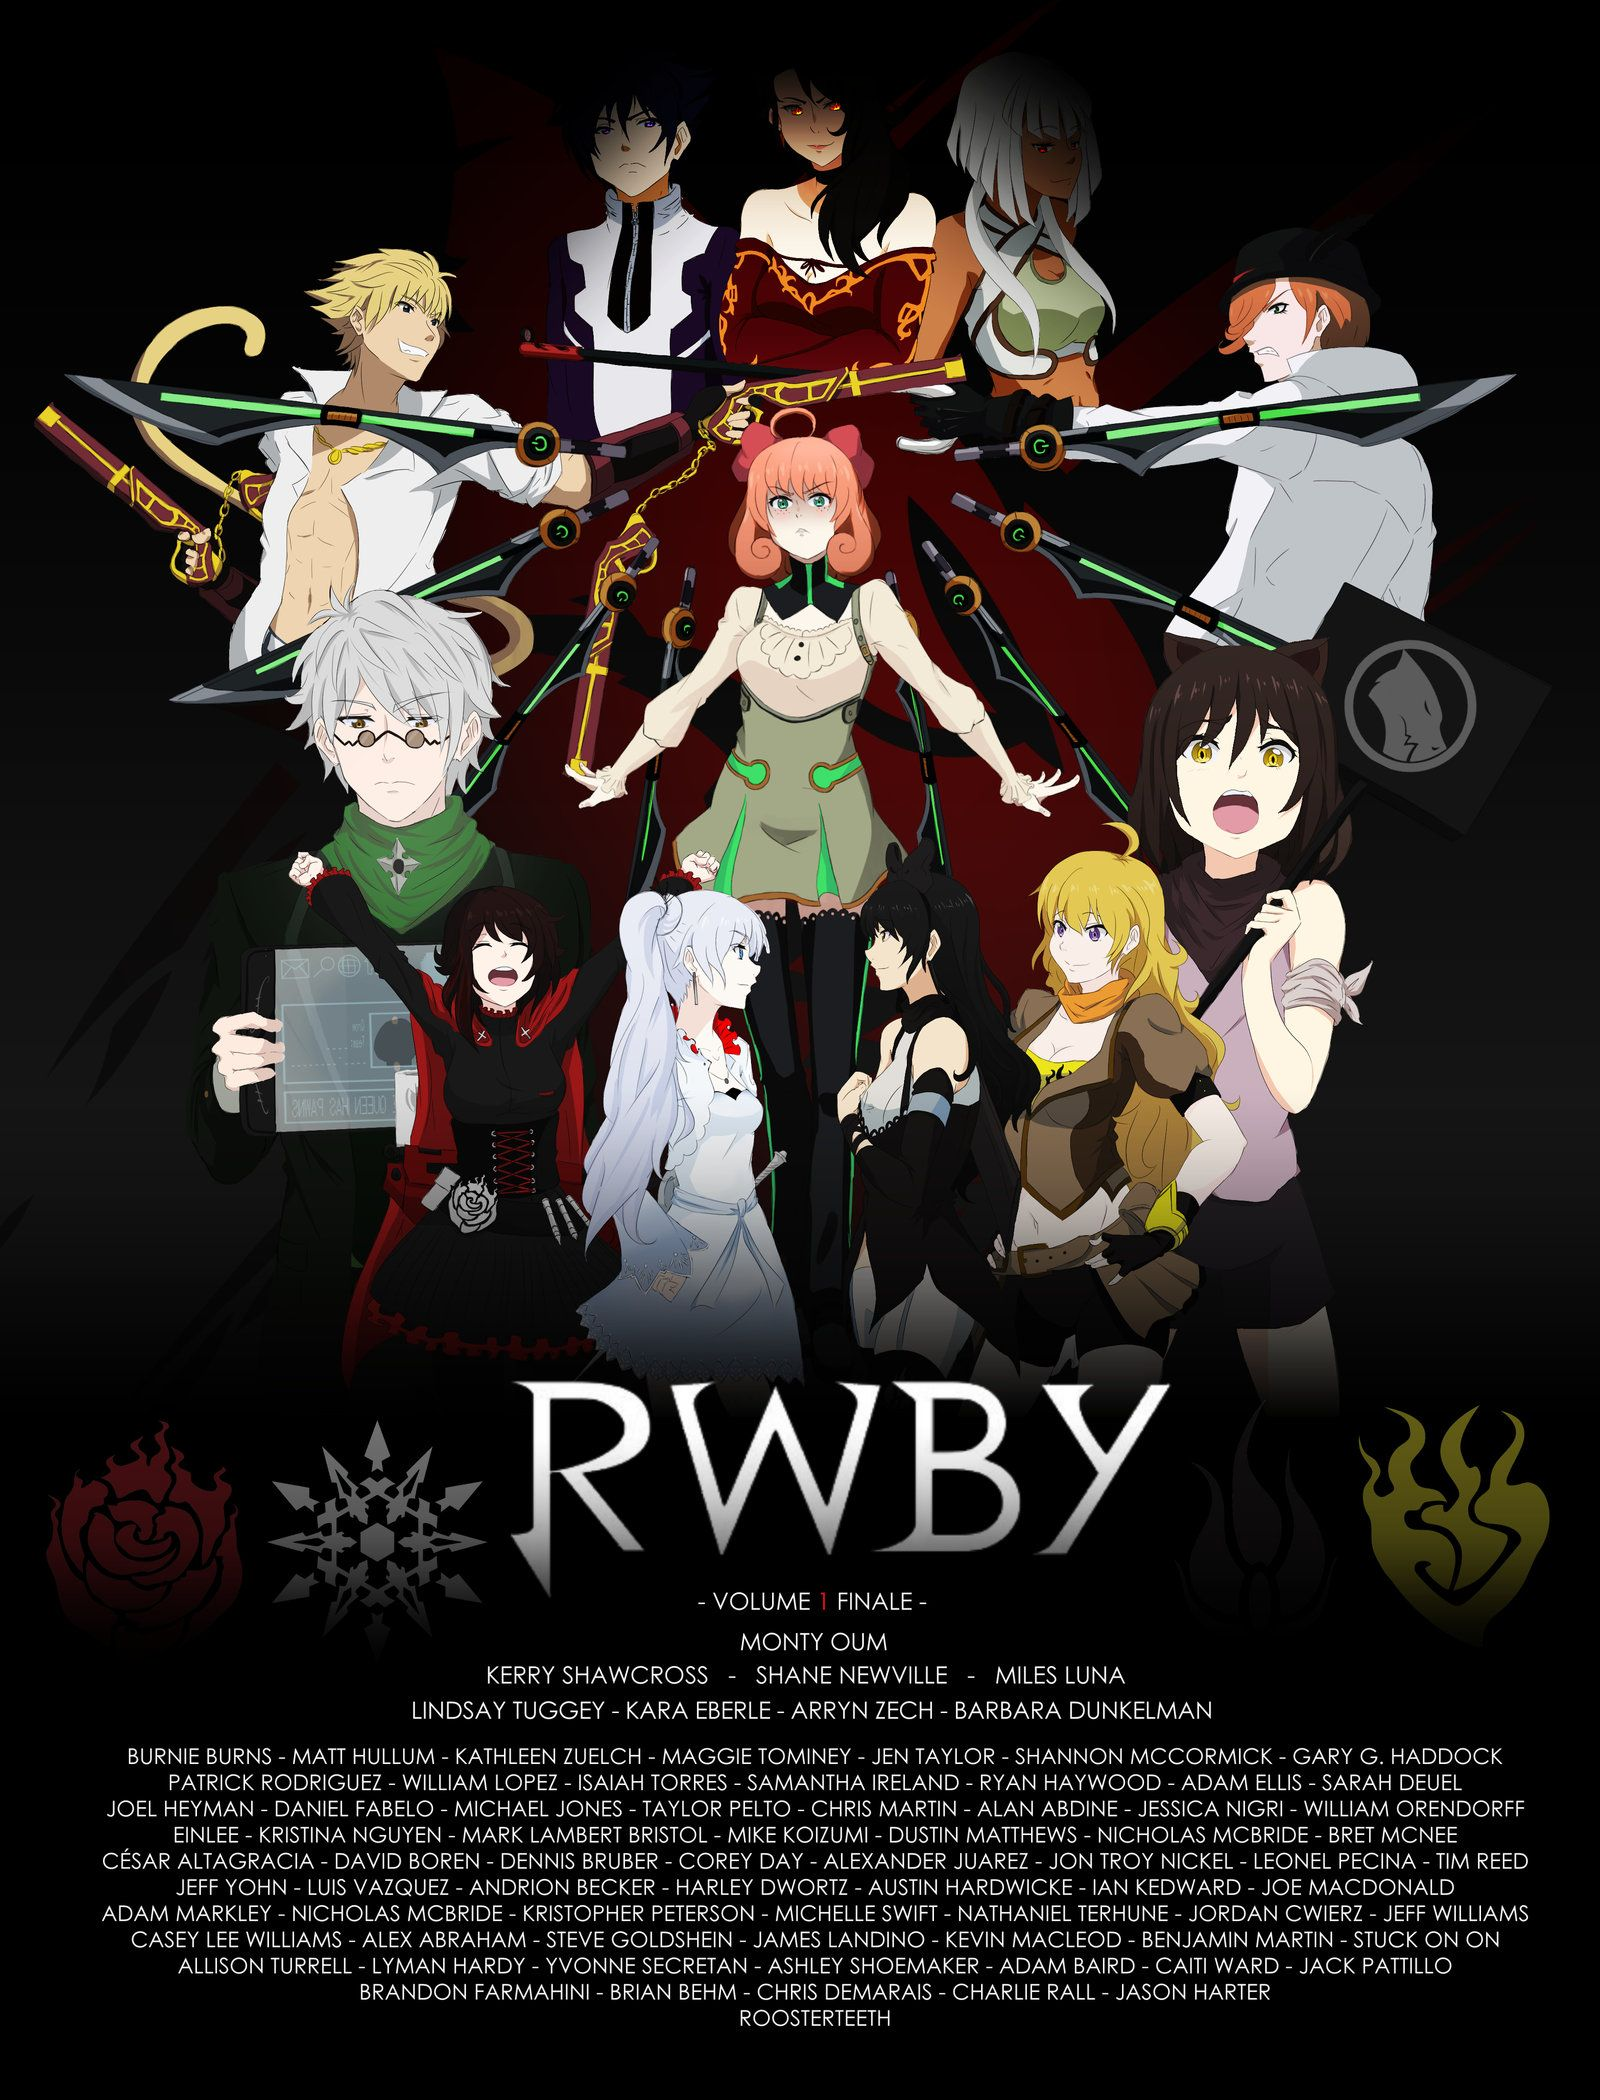 RWBY Volume 1 Finale (PRINT) by on